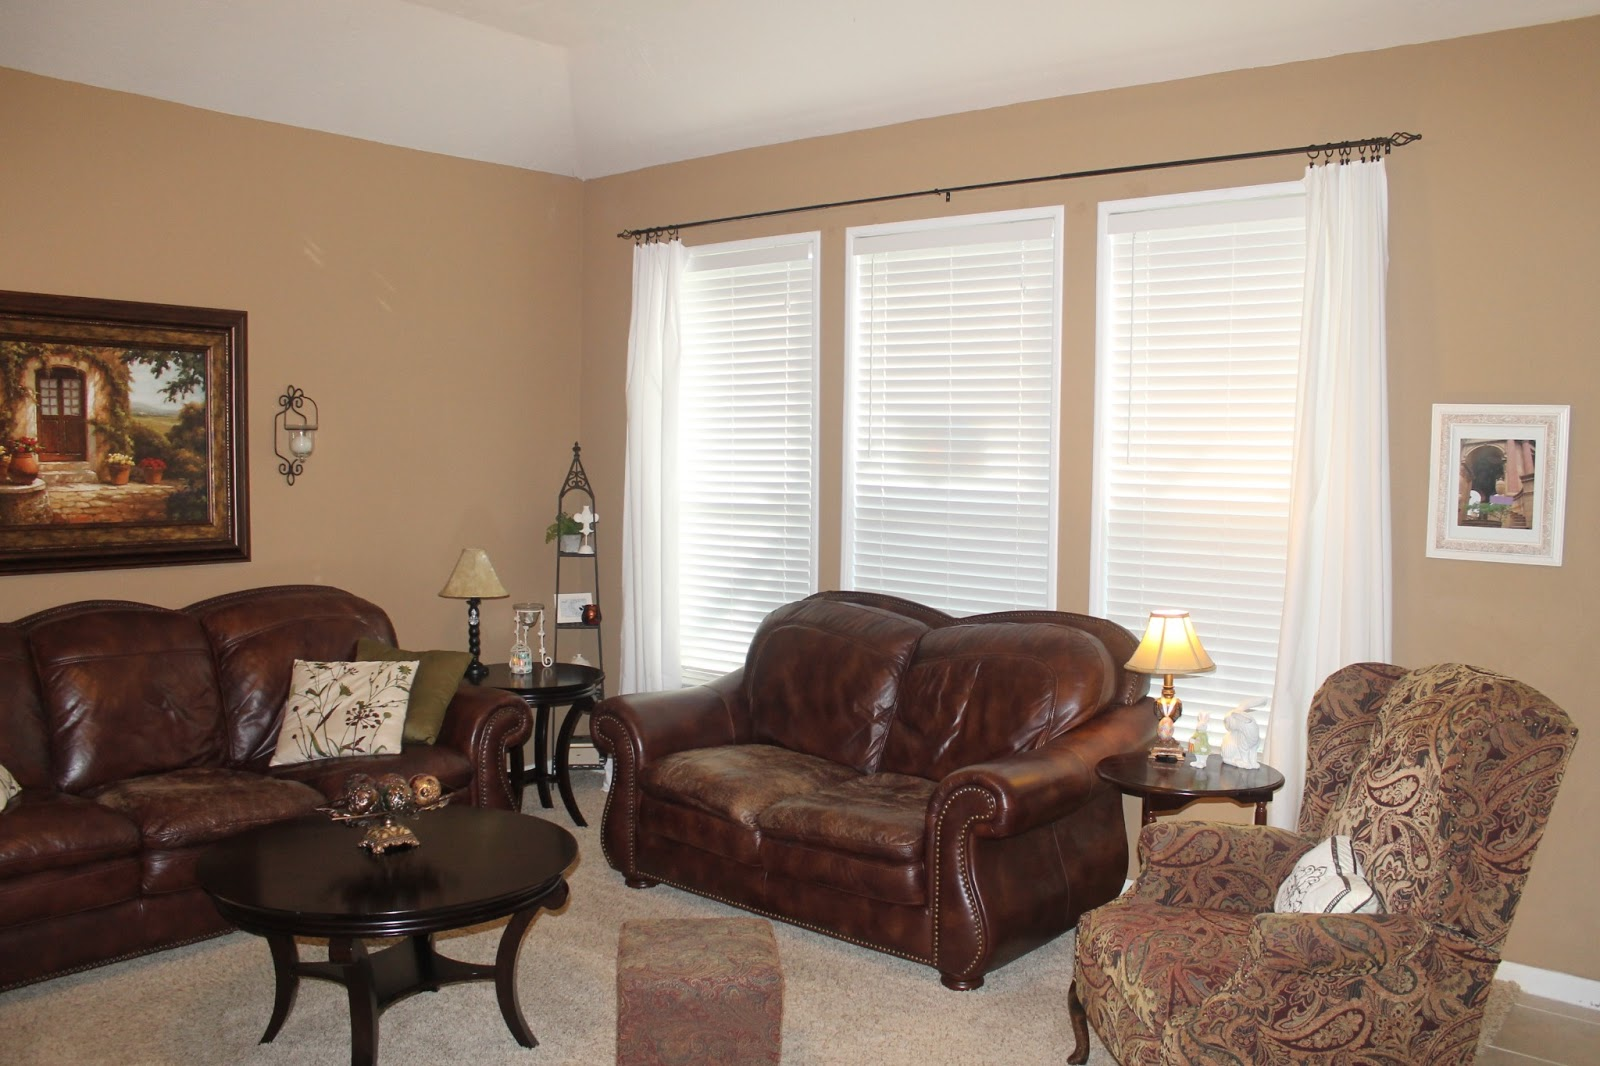 Family room curtains ideas - These